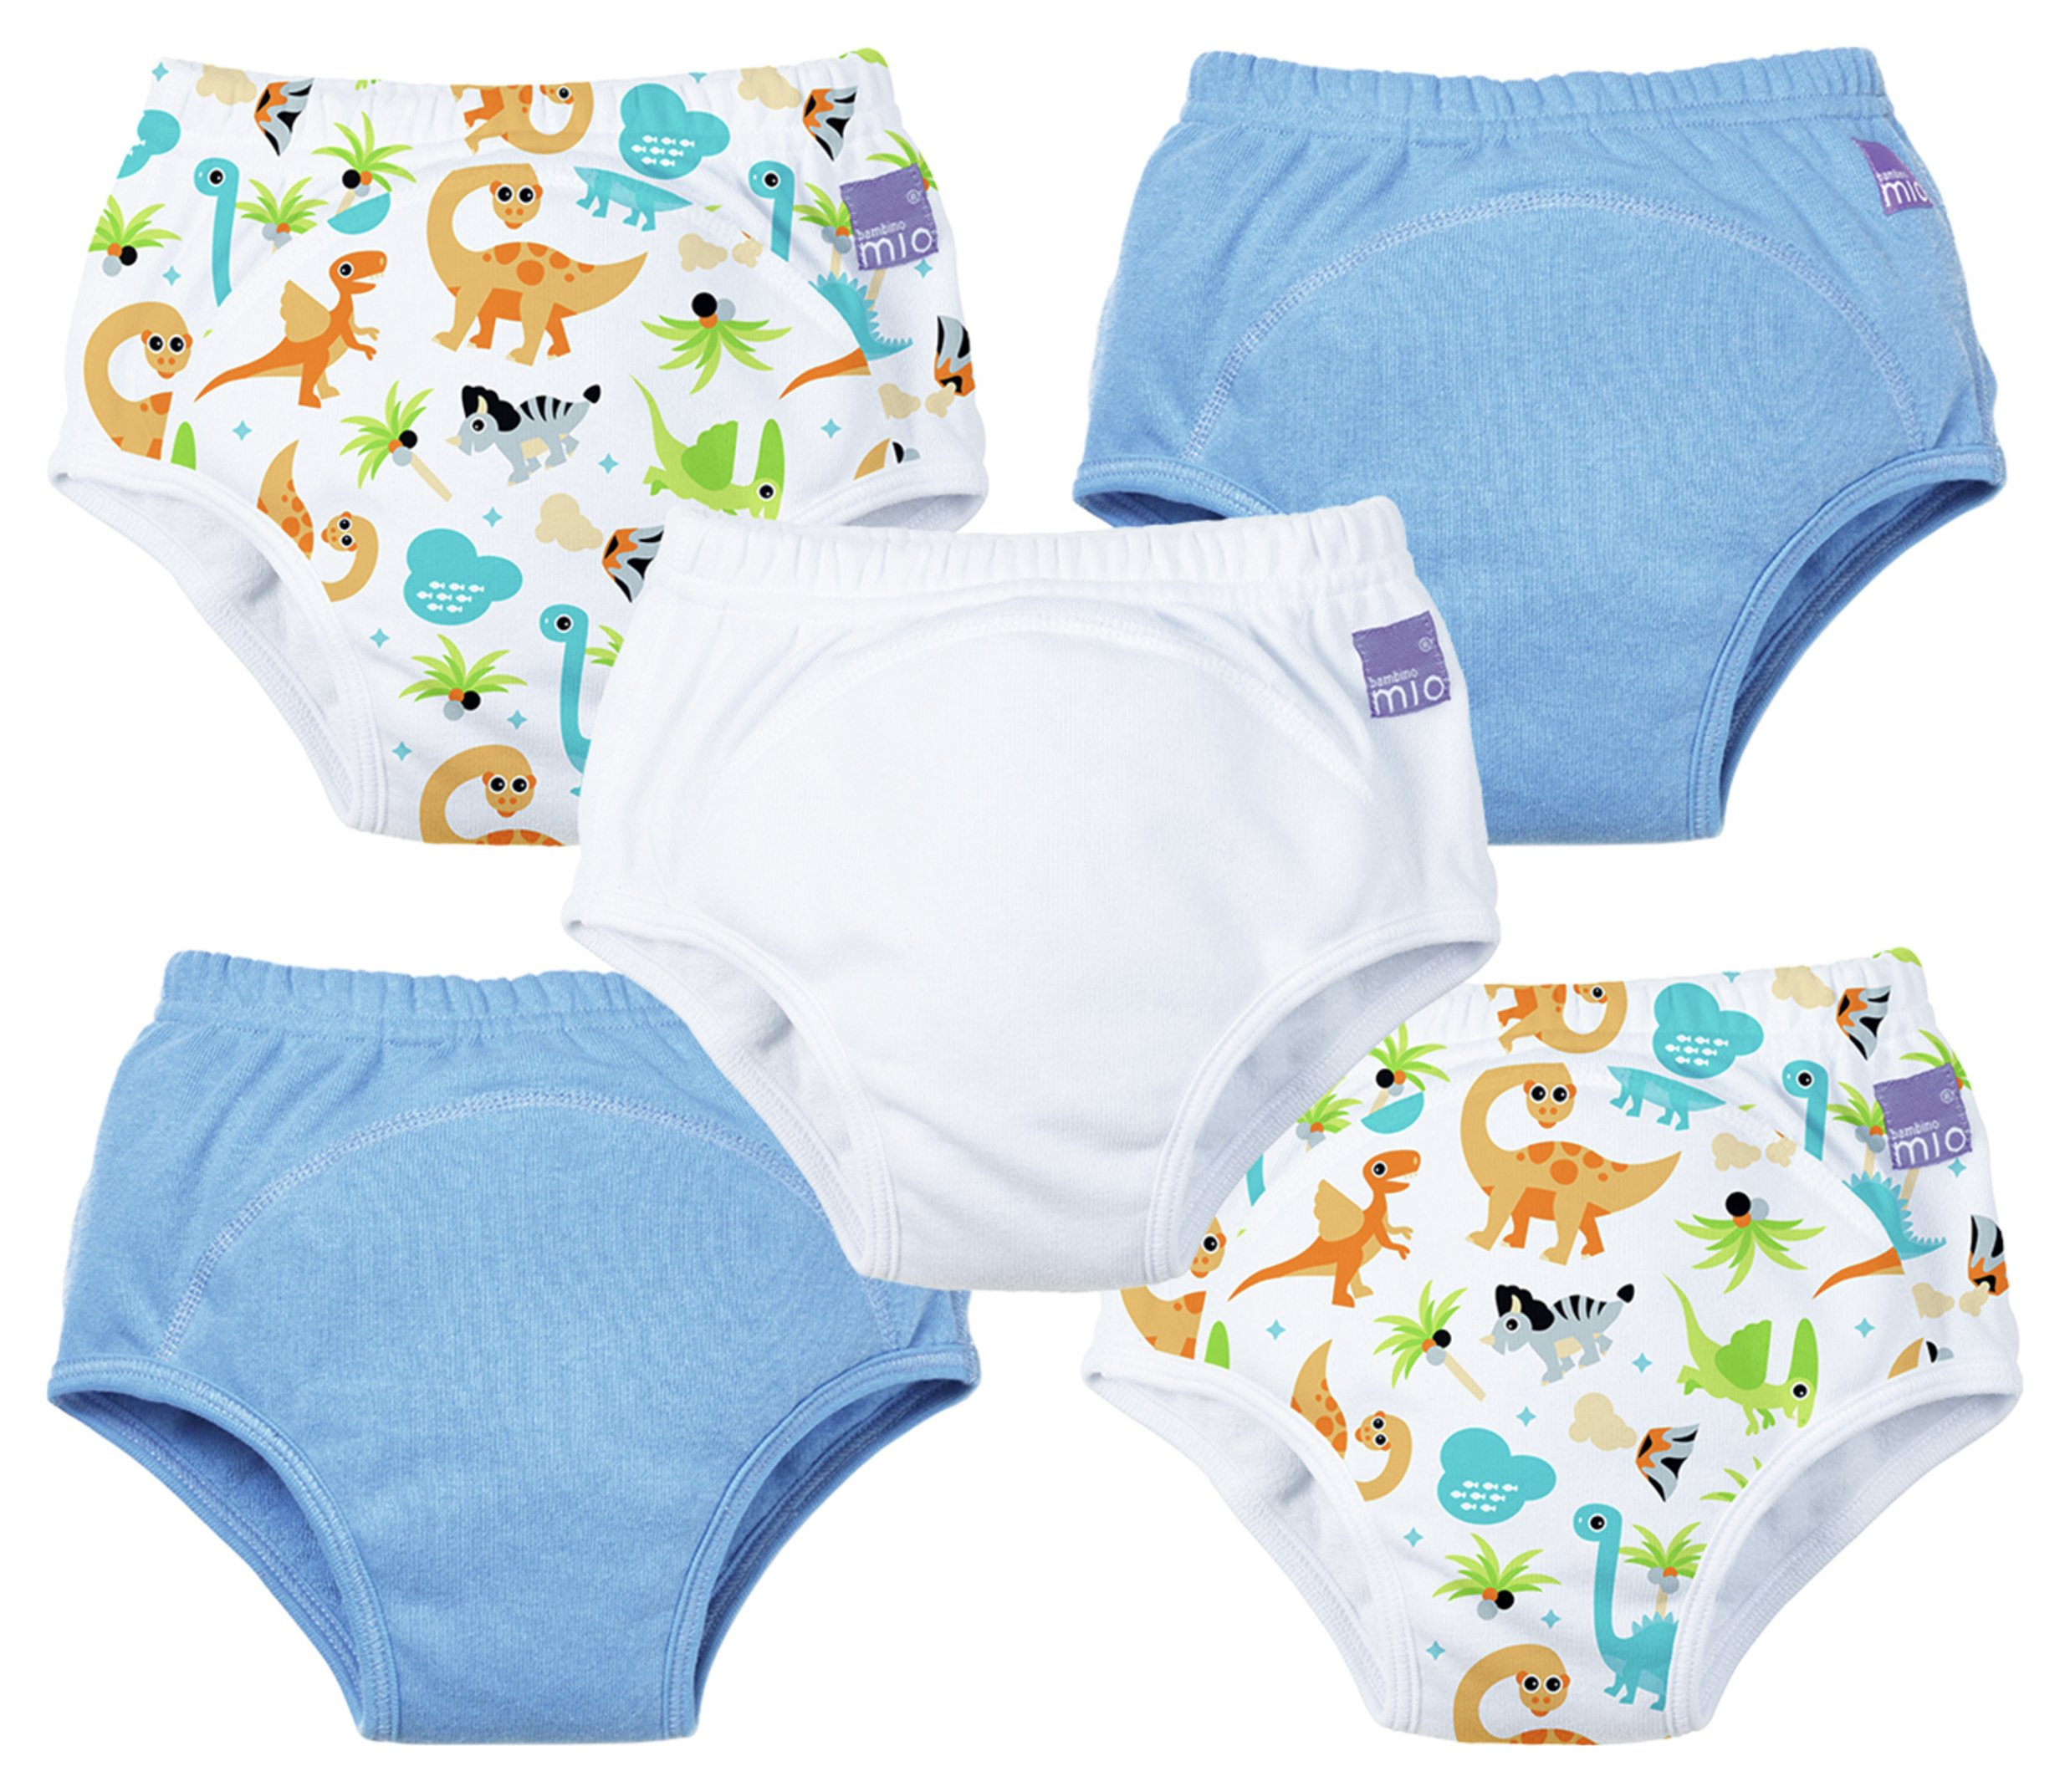 Image of Bambino Mio Dino Potty Training Pants 2-3 Years - 5 Pack